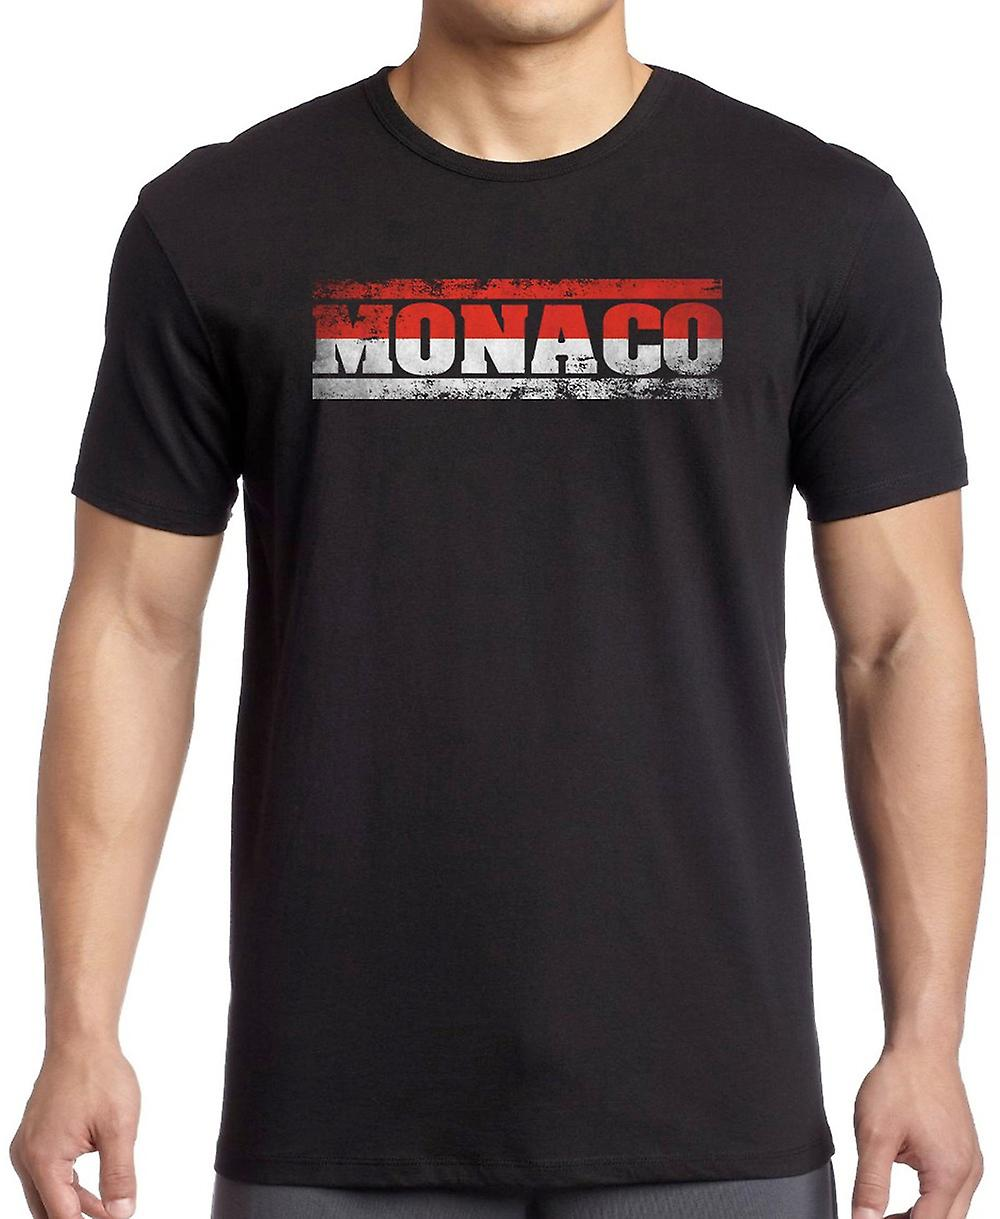 Monaco Flag - Words T Shirt